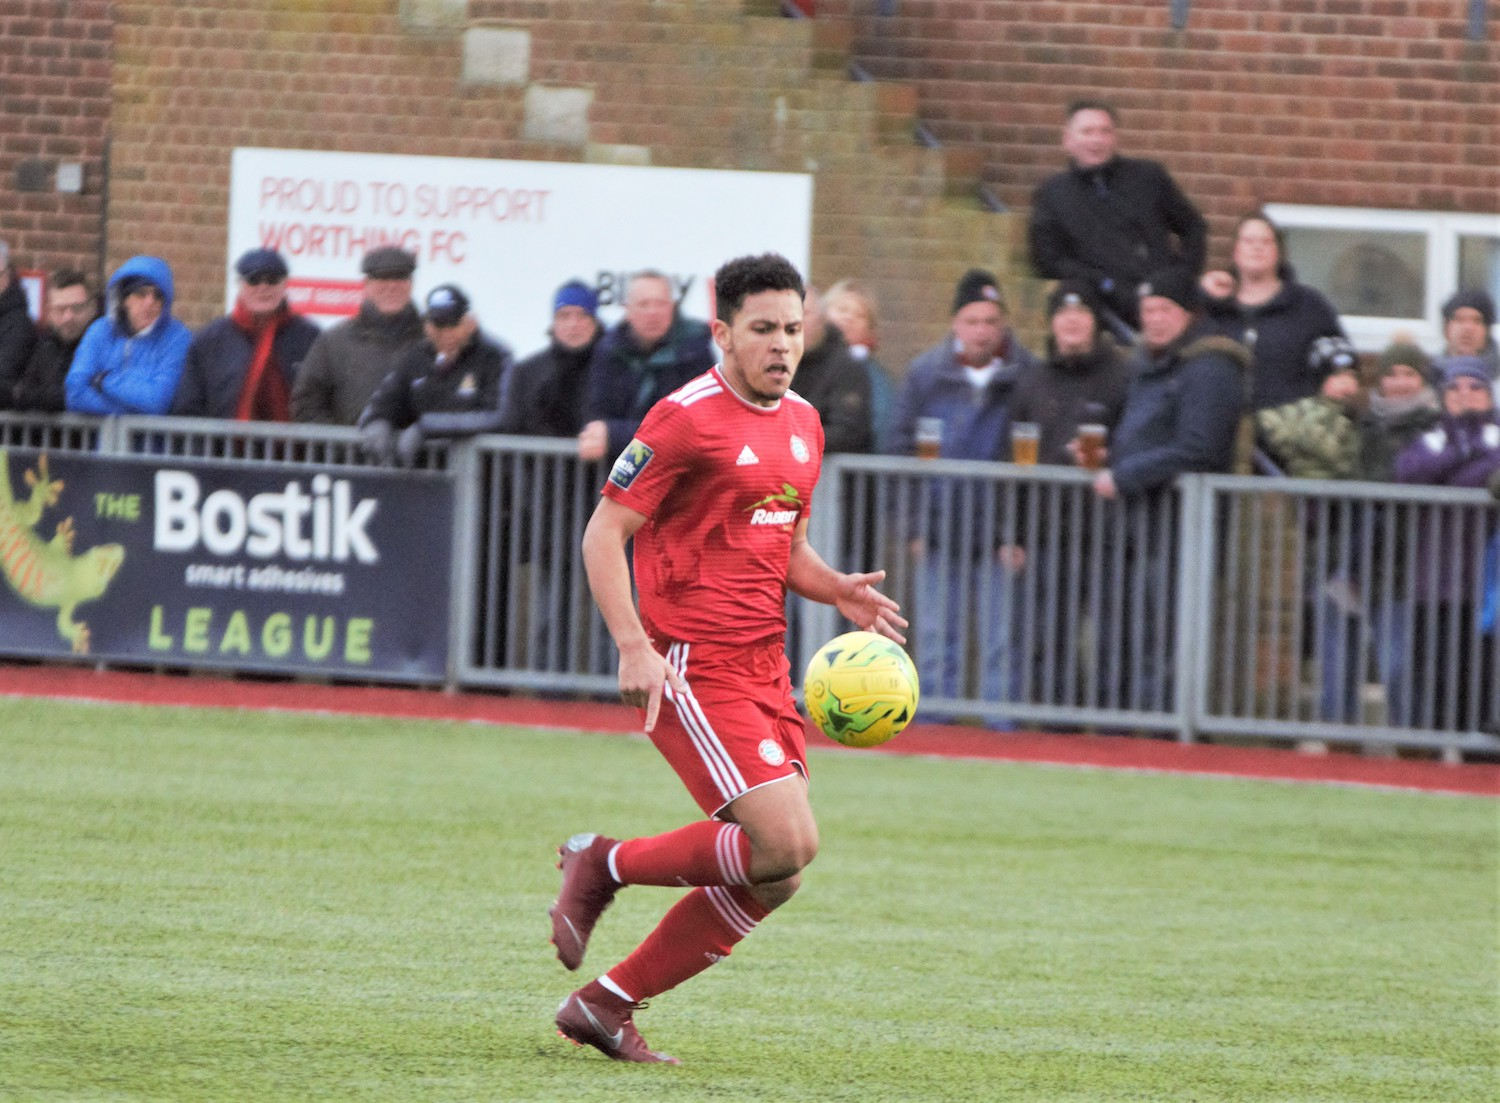 Read the full article - Bargains Galore, As Enfield Go To Town